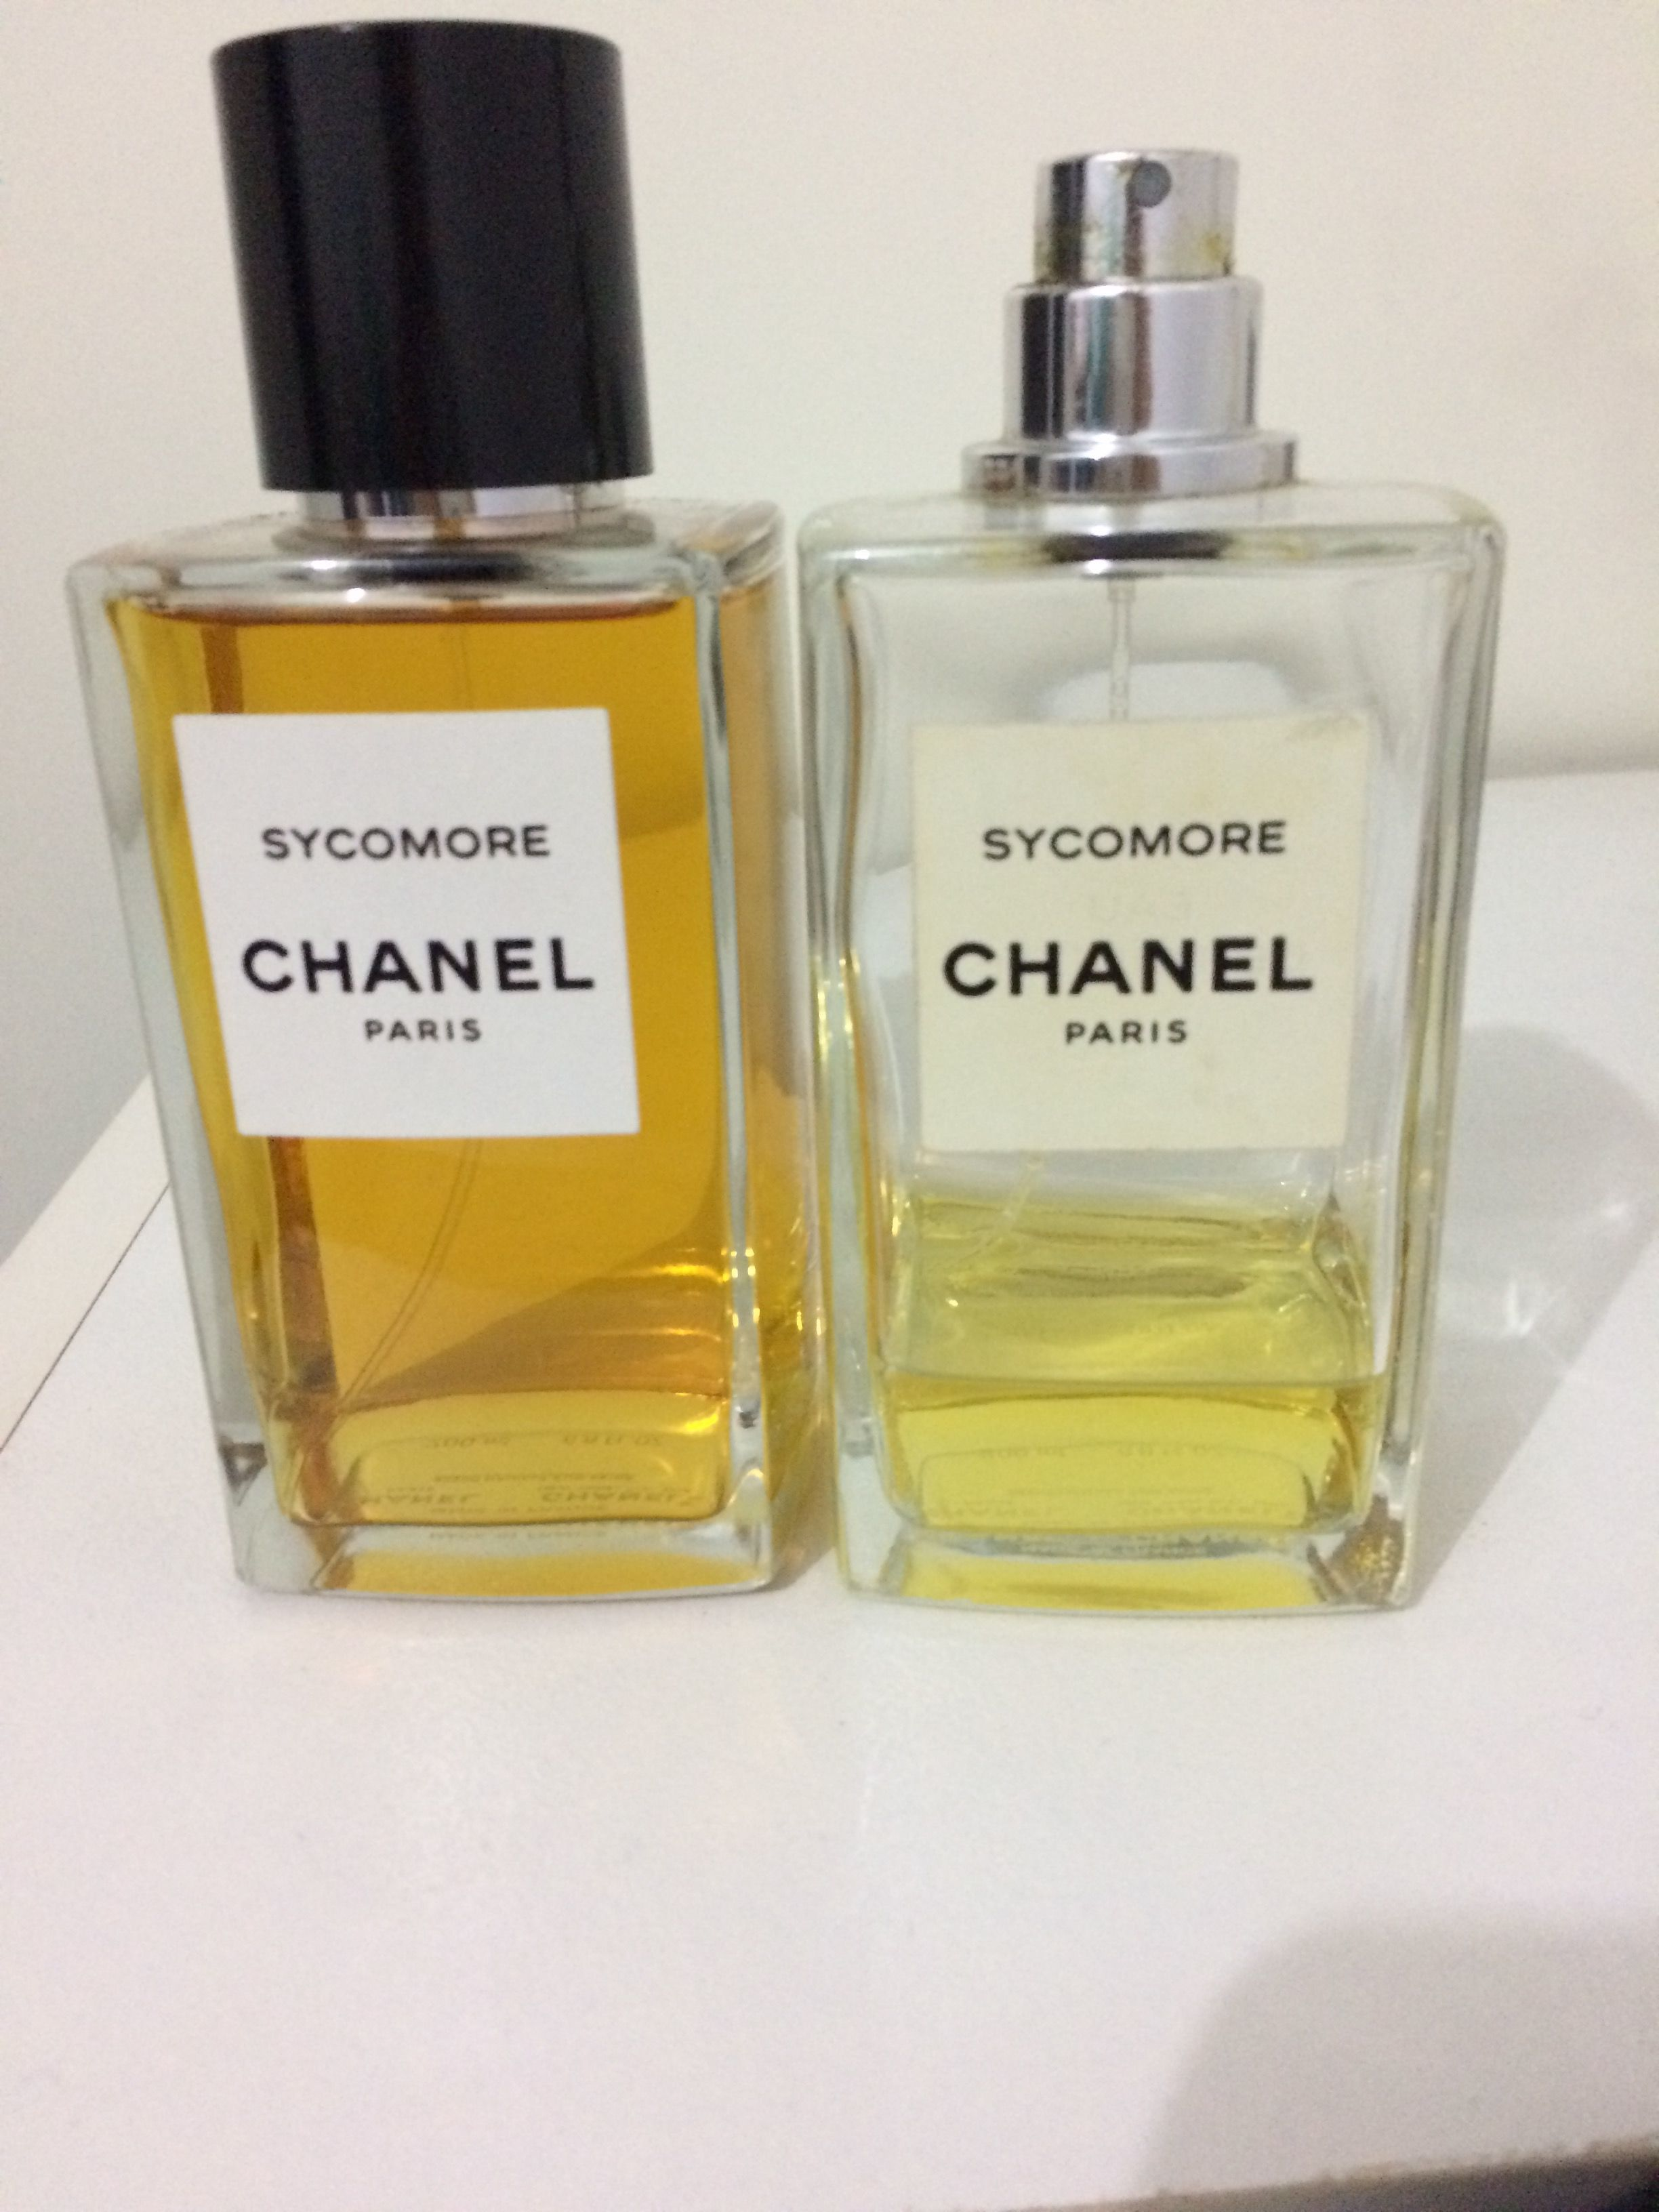 Homme's photos in Scent/Fragrance of the Day thread